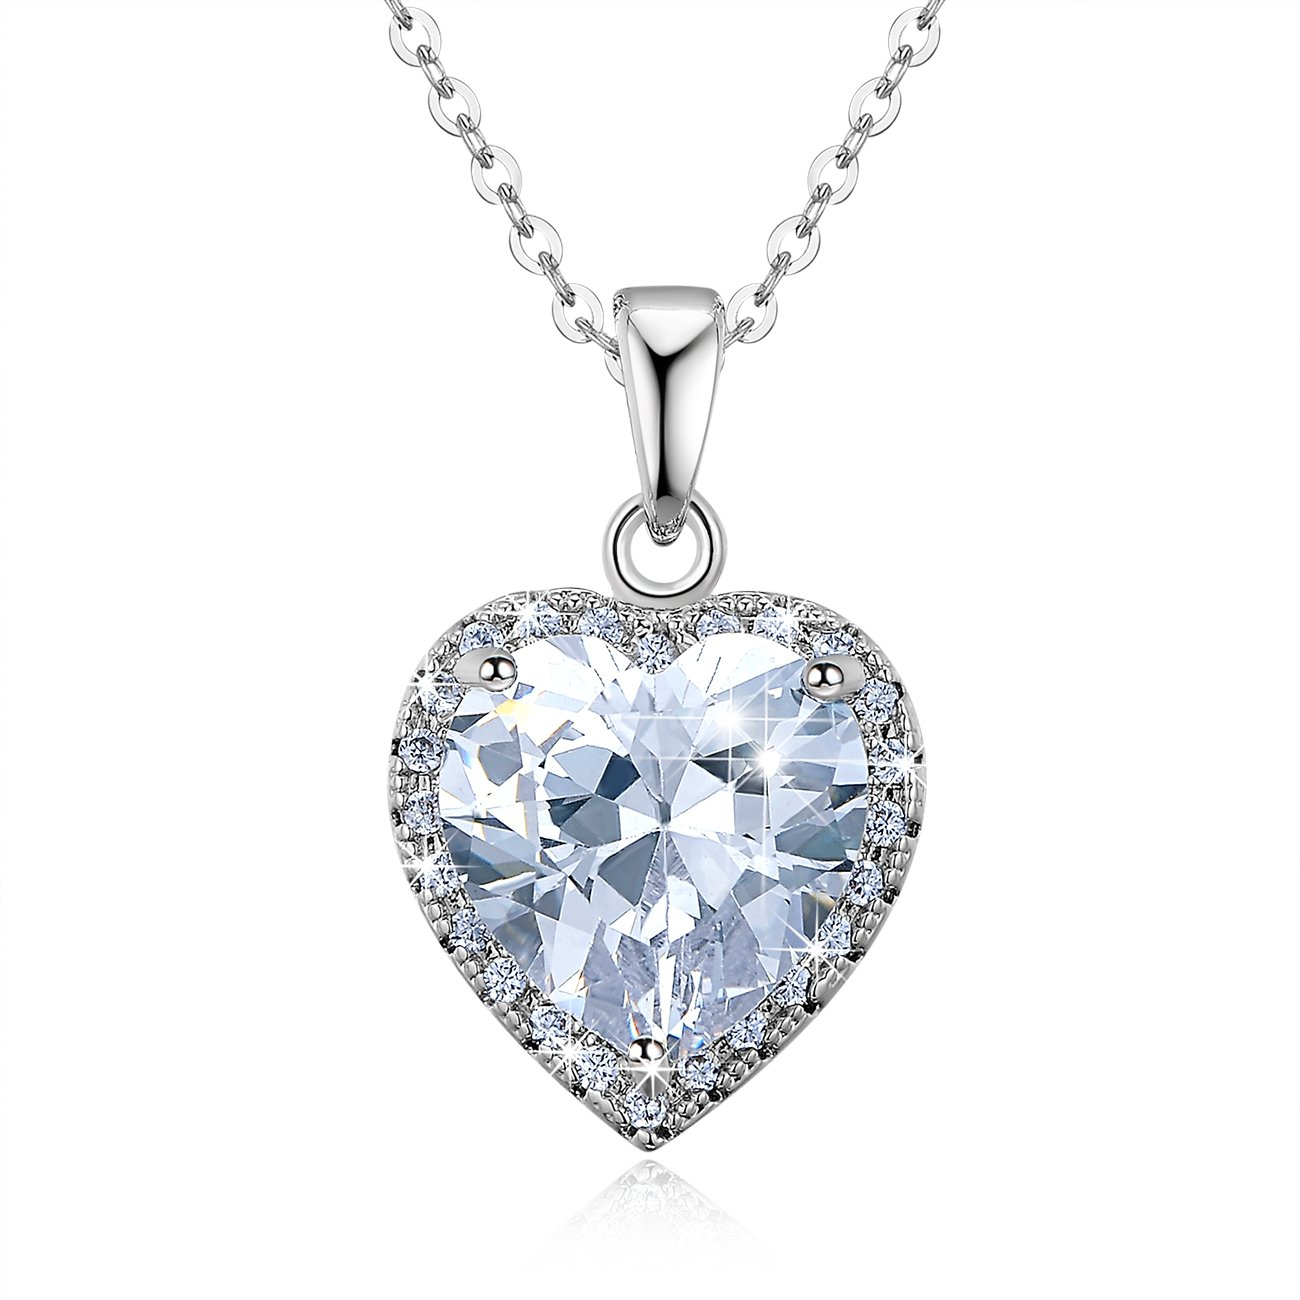 Heart-Shaped Pendant NinaMaid Brave Love Sparkling Created White Crystal Gold Plated Necklace 18 Inch